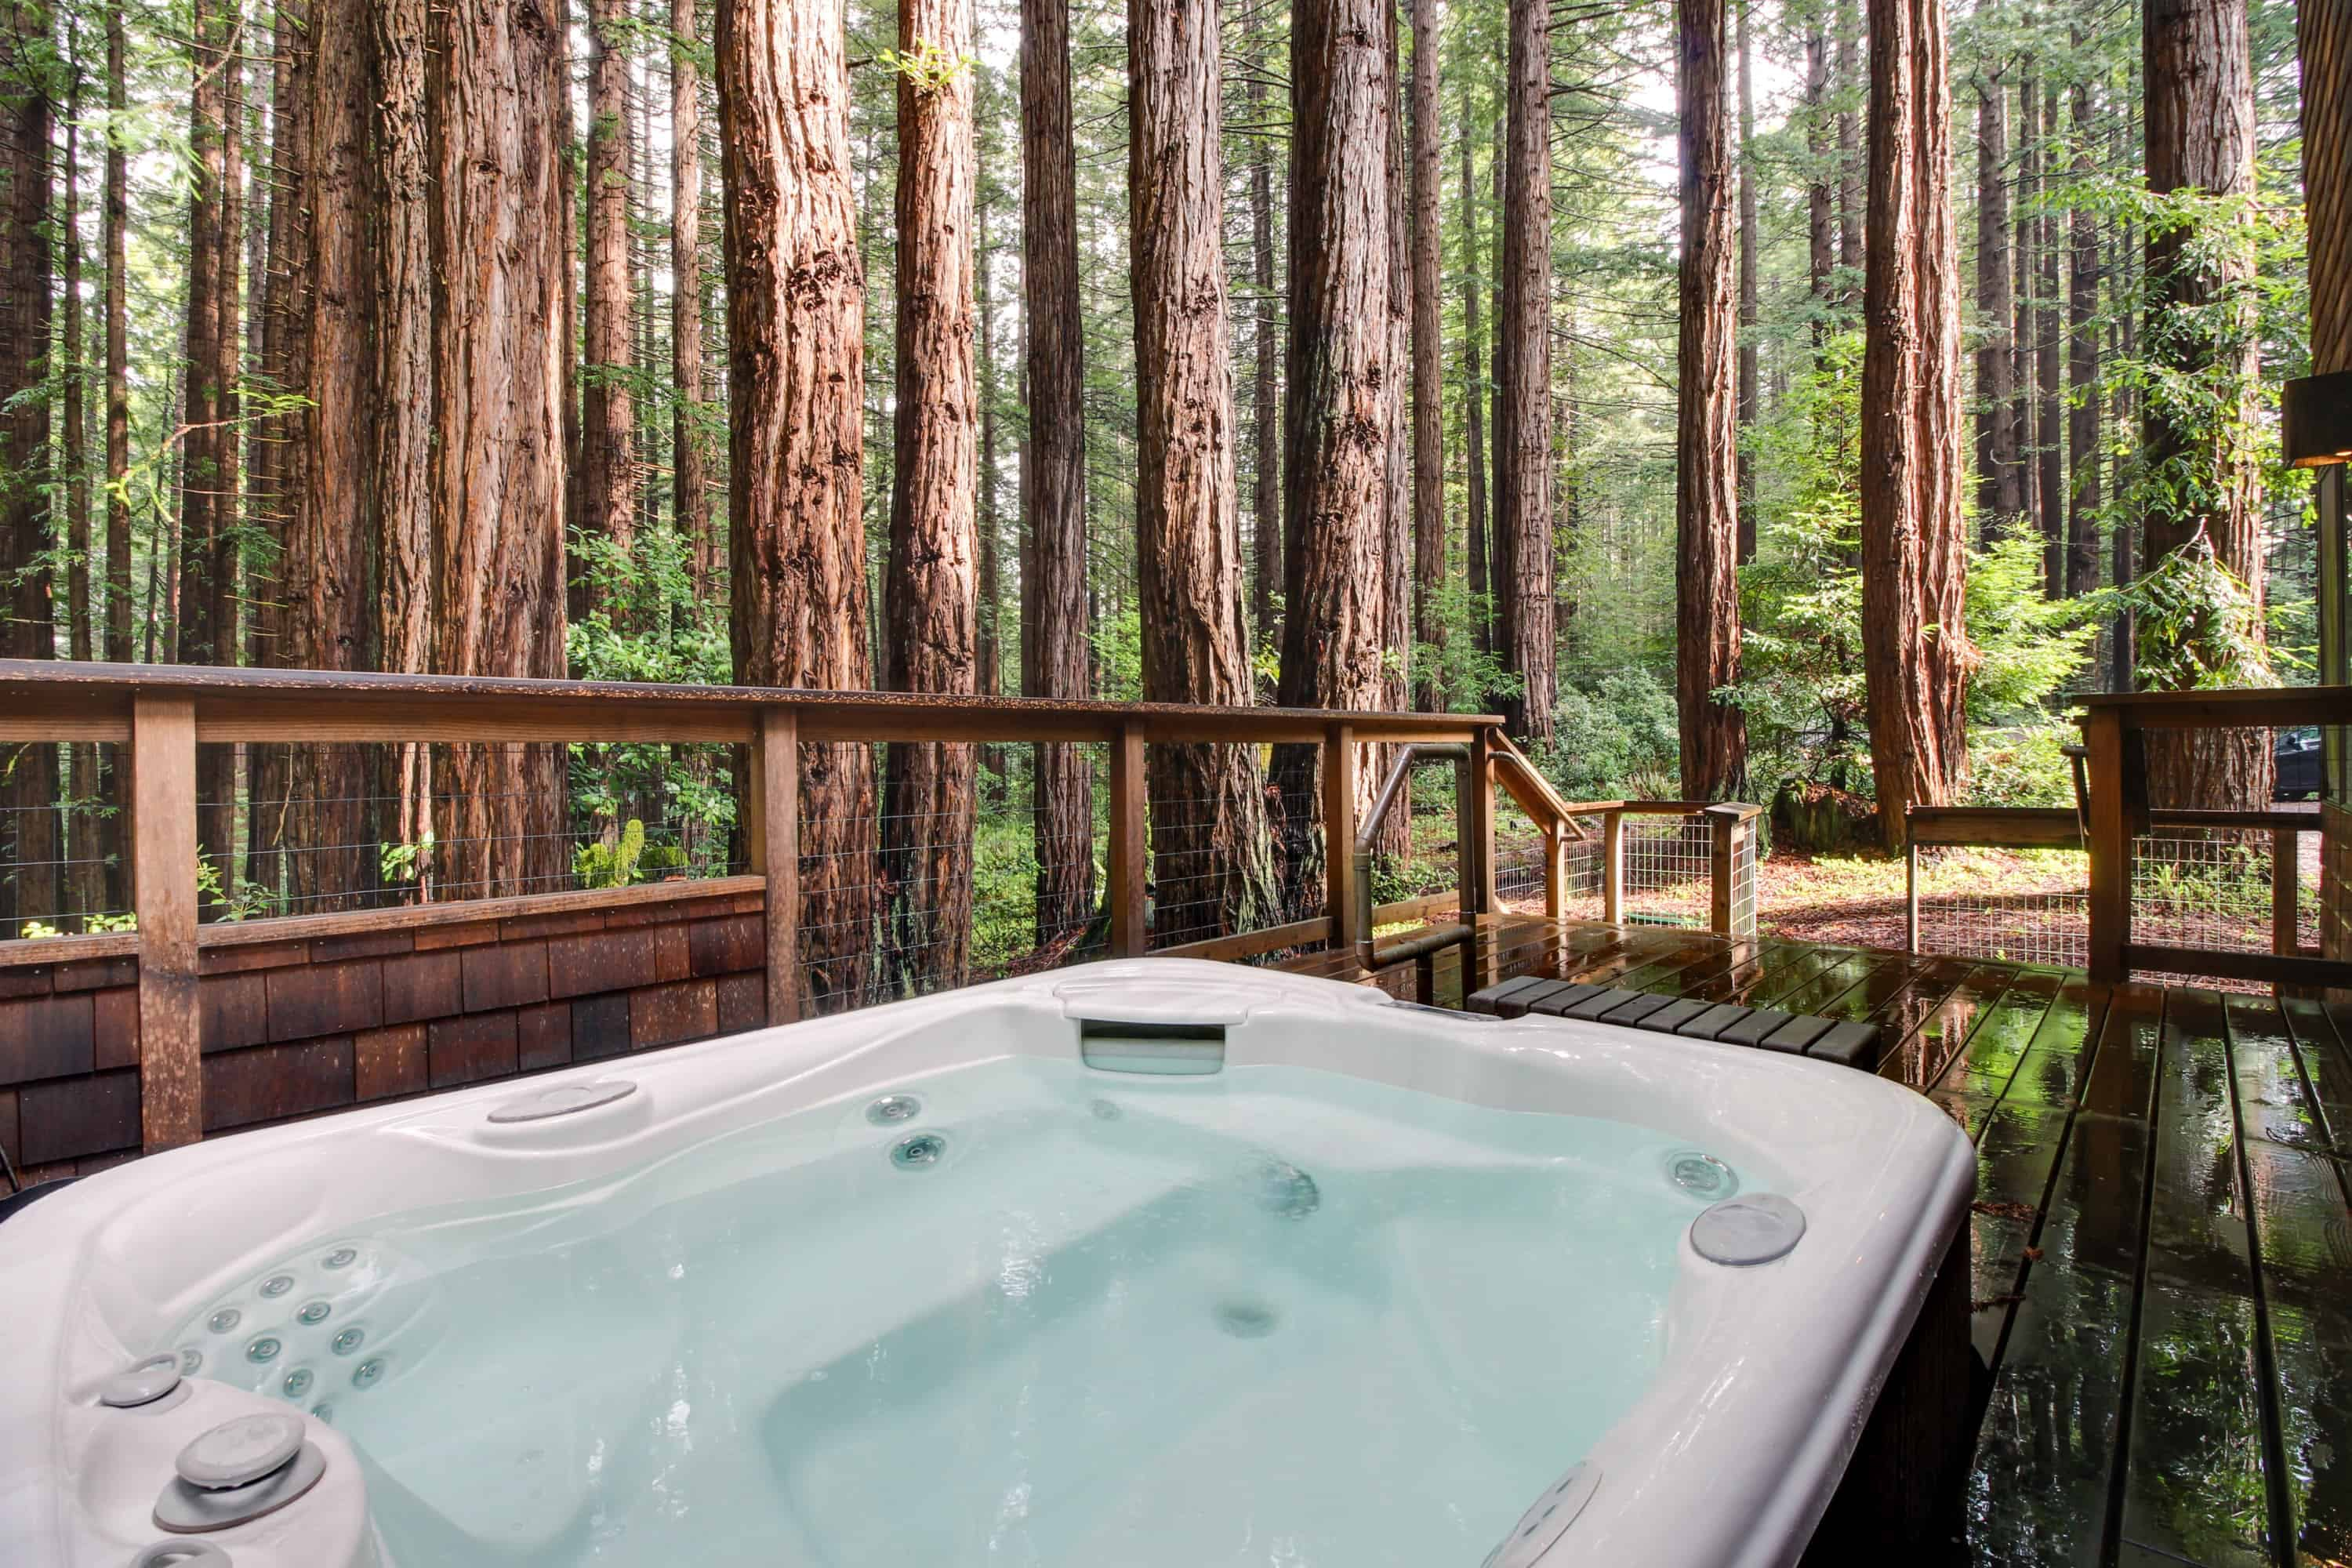 a hot tub overlooking the forest